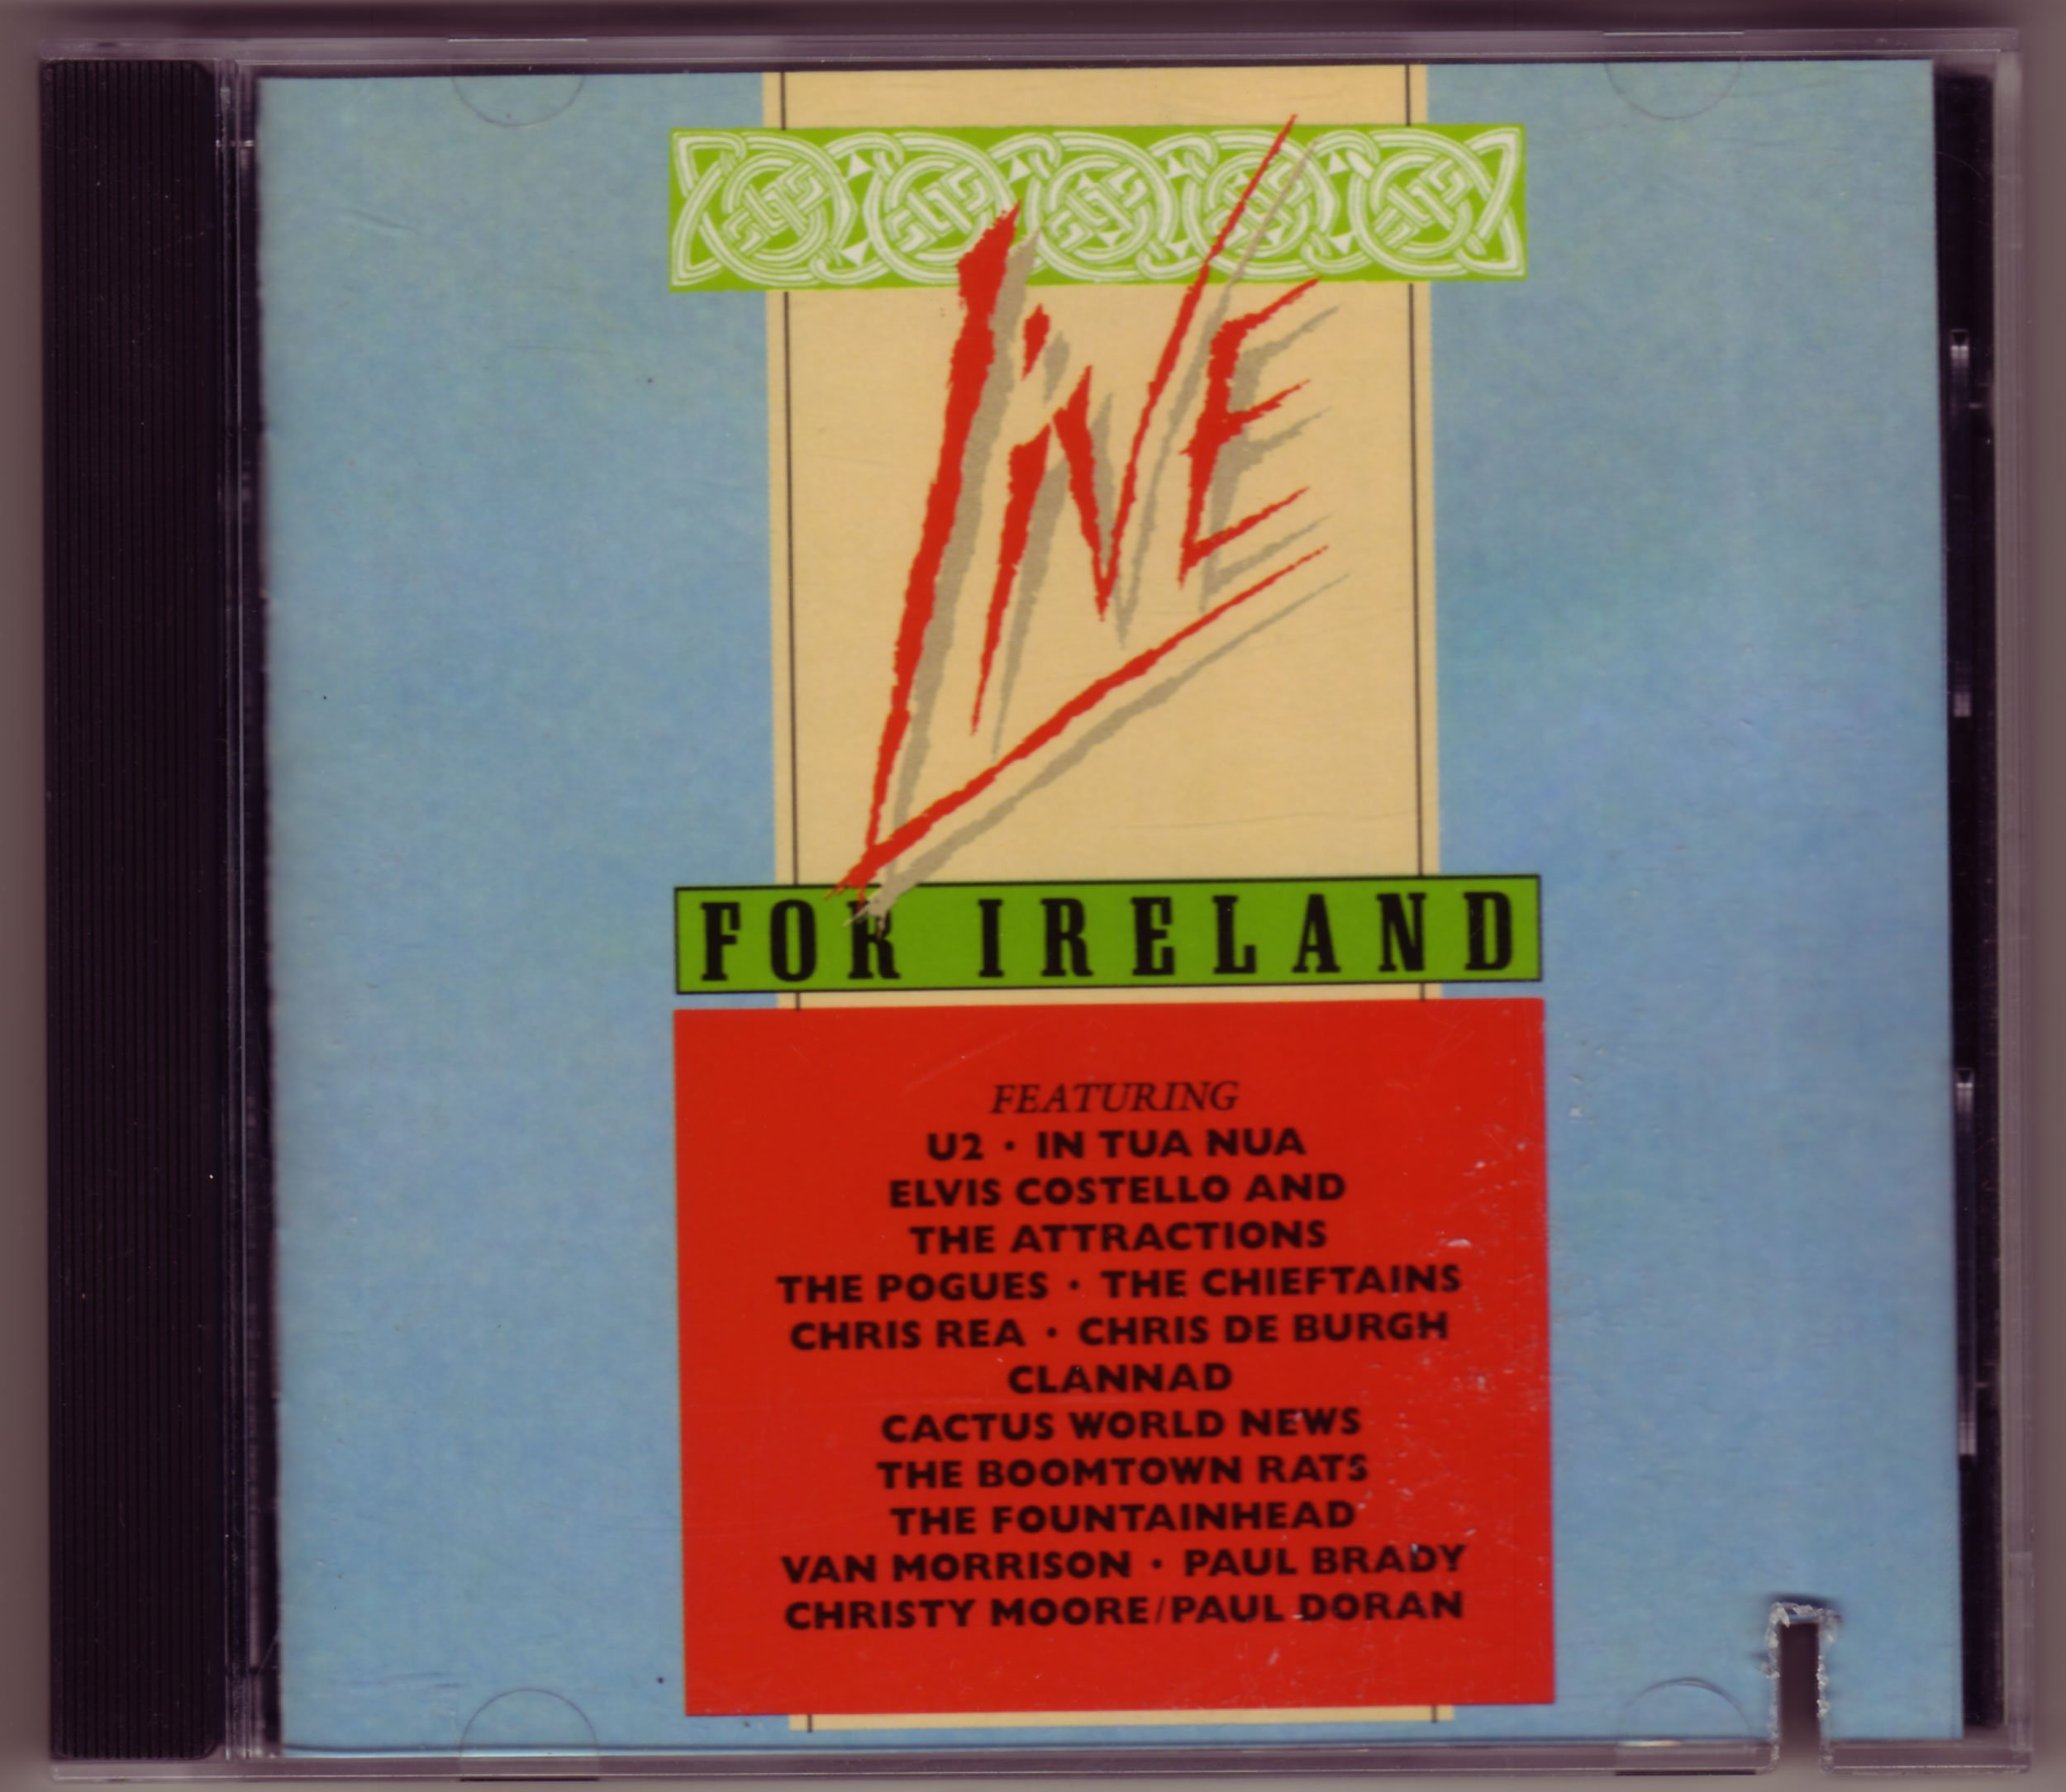 Live for Ireland by MCA